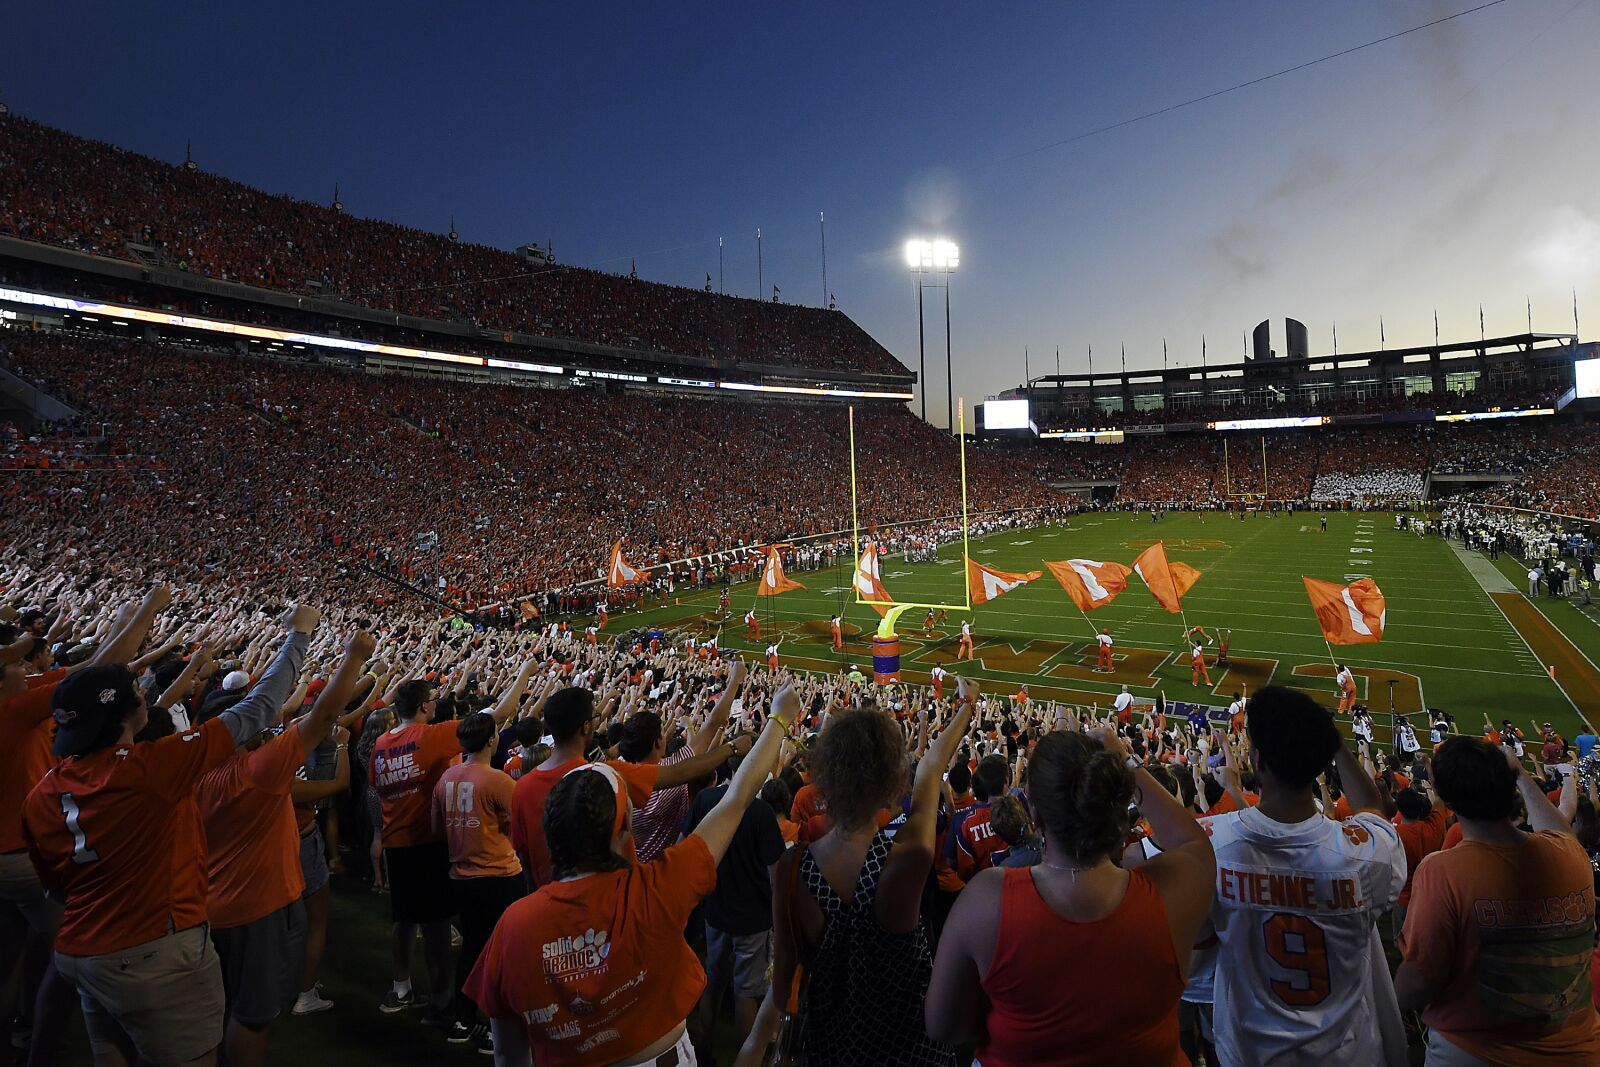 clemson vs syracuse - photo #40